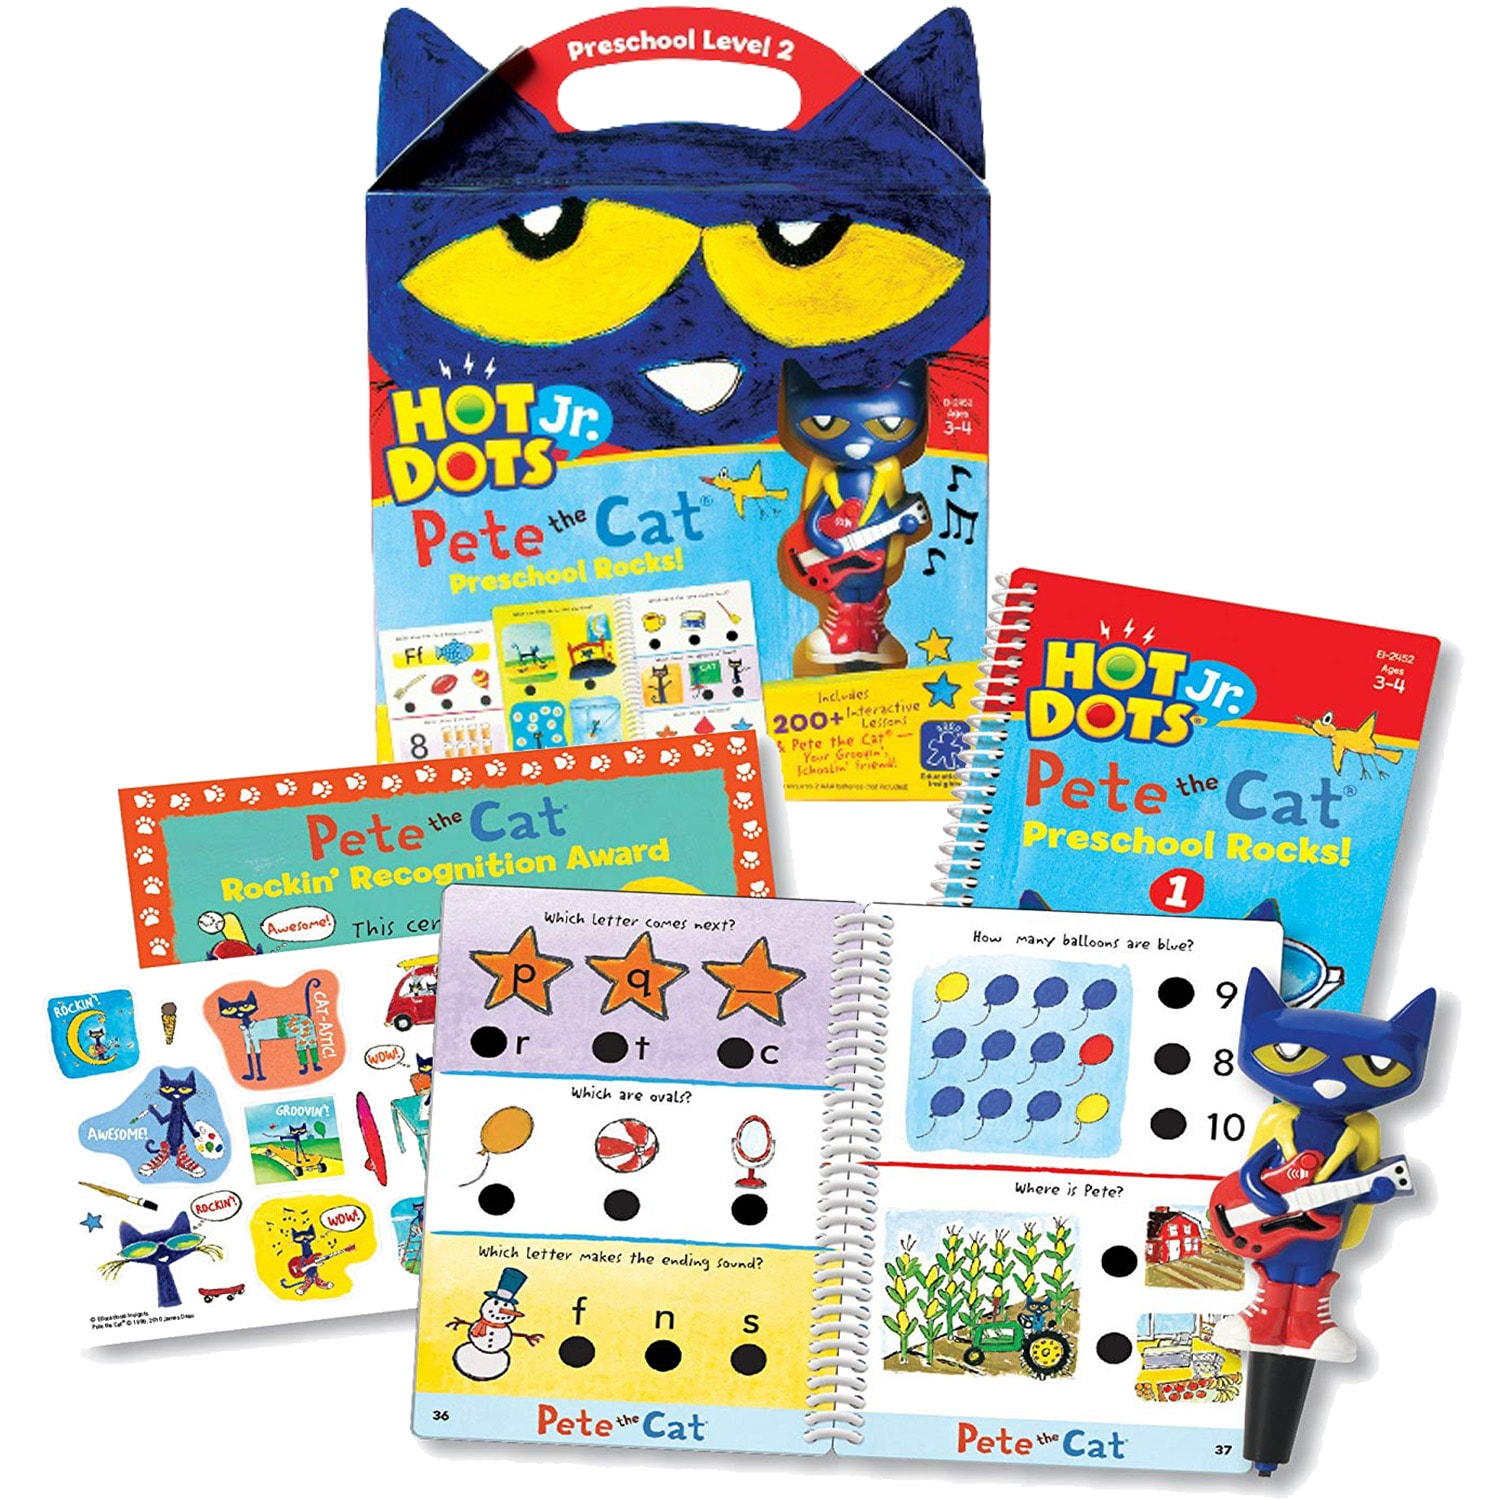 Pete the Cat Hot Dots Jr. Preschool Rocks!